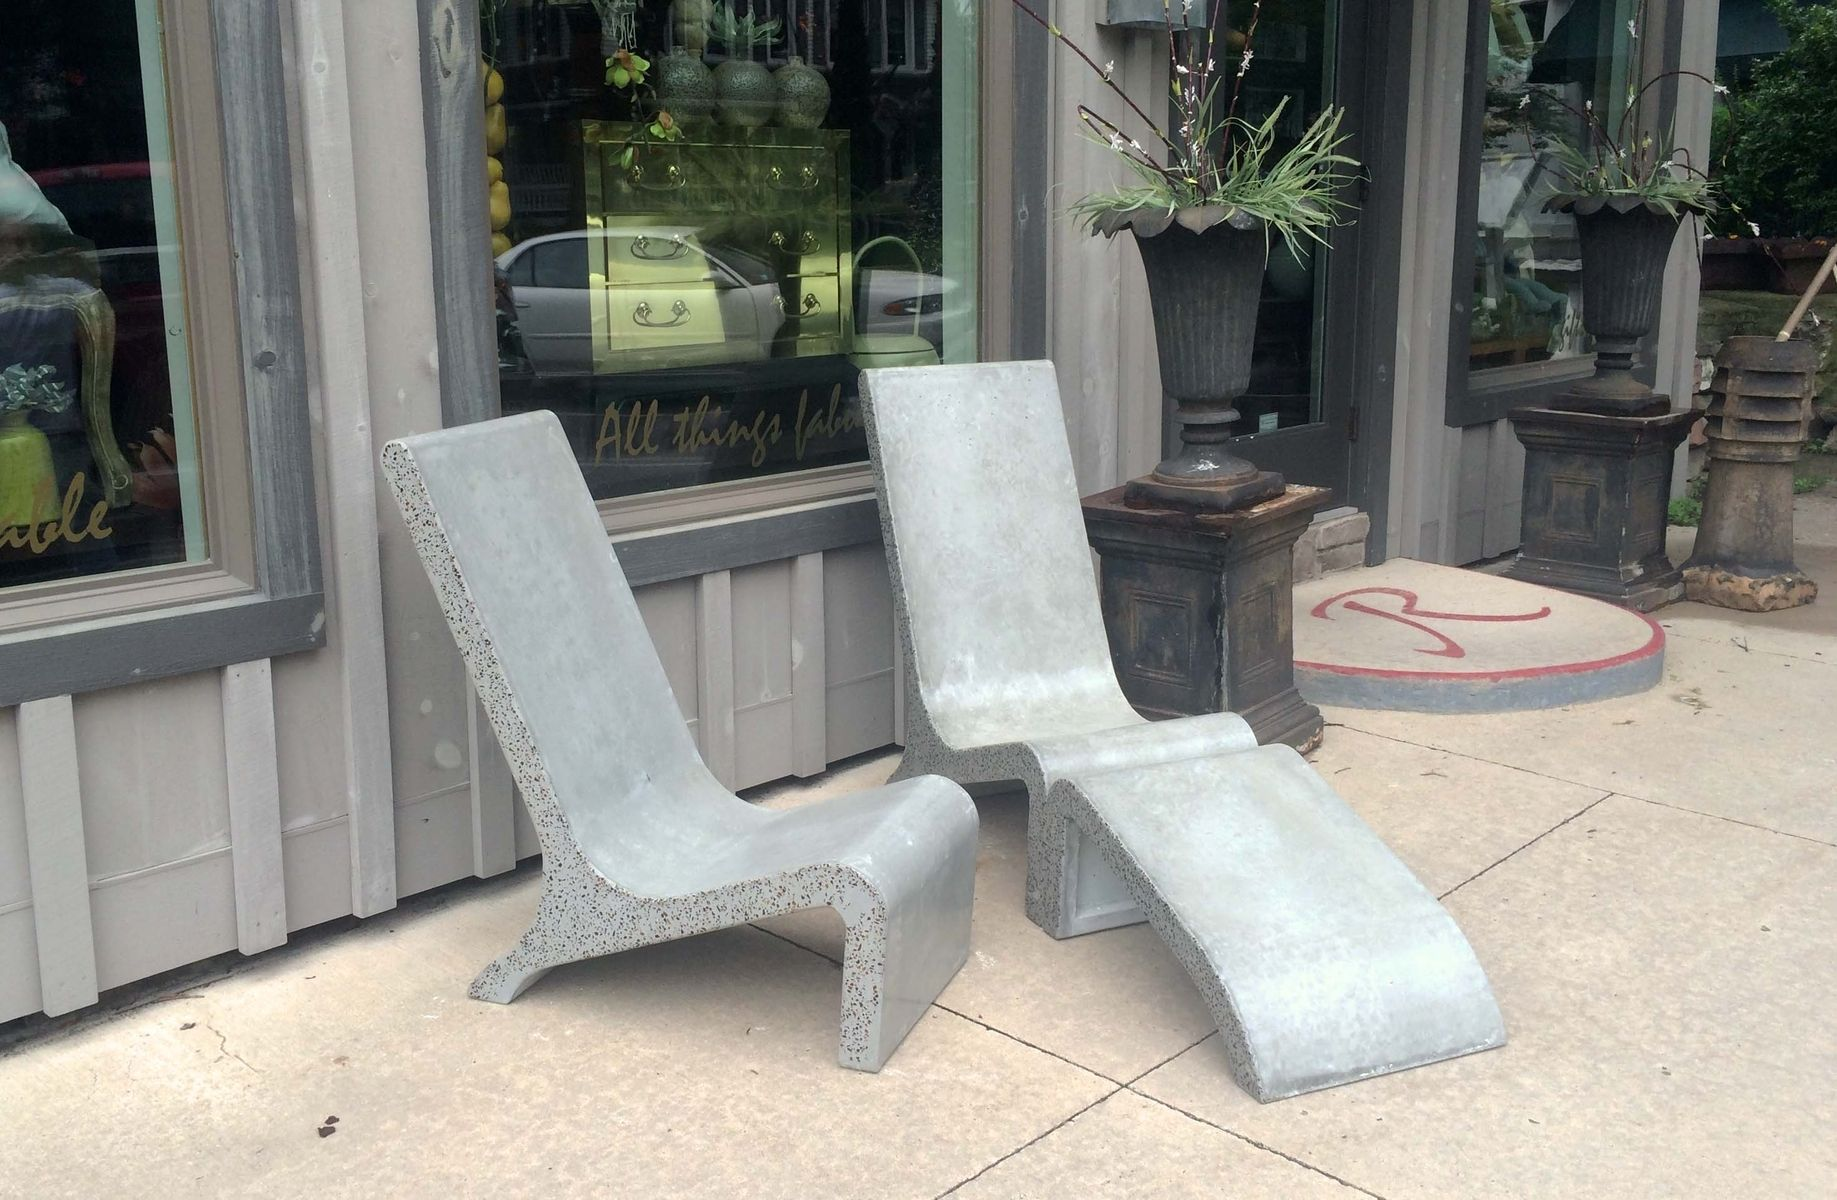 custom made concrete adirondack chairmasonry and metal l.p.